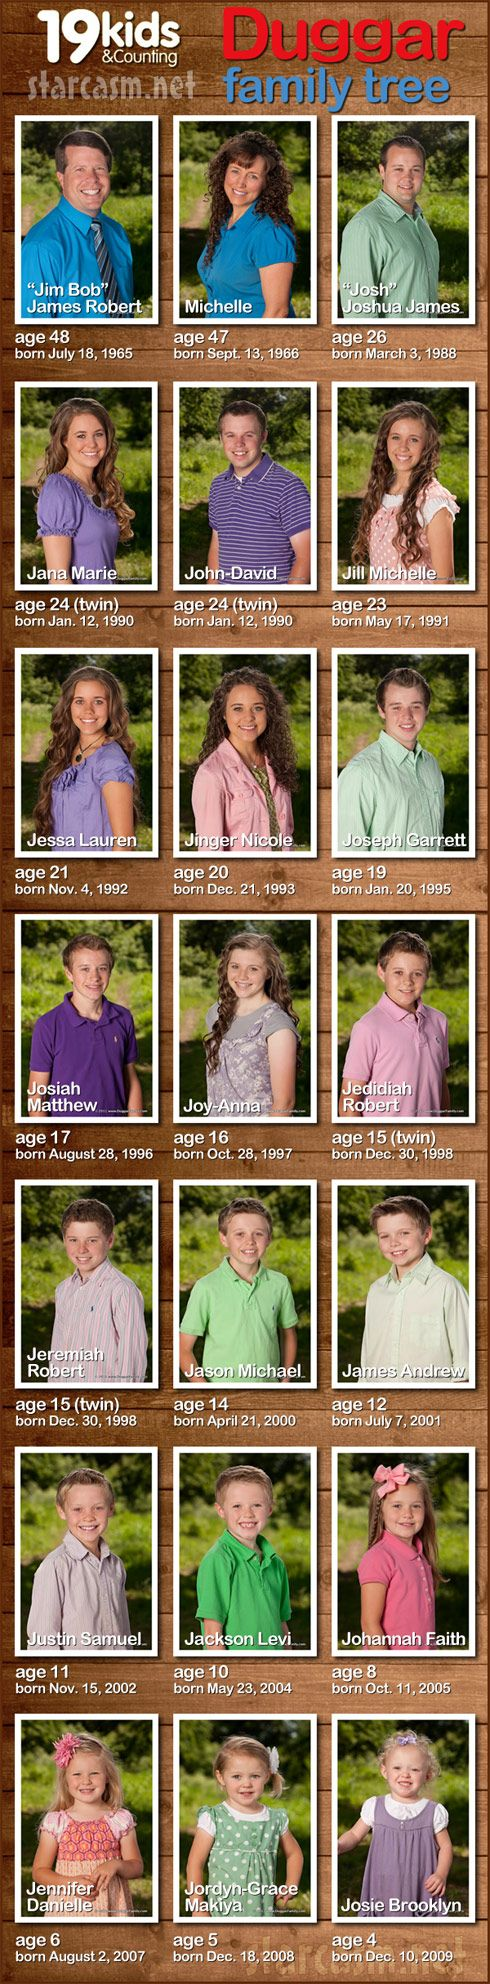 19 Kids and Counting Duggar Family Tree with birthdays and ages - I'm not sure why, but I like this family :)